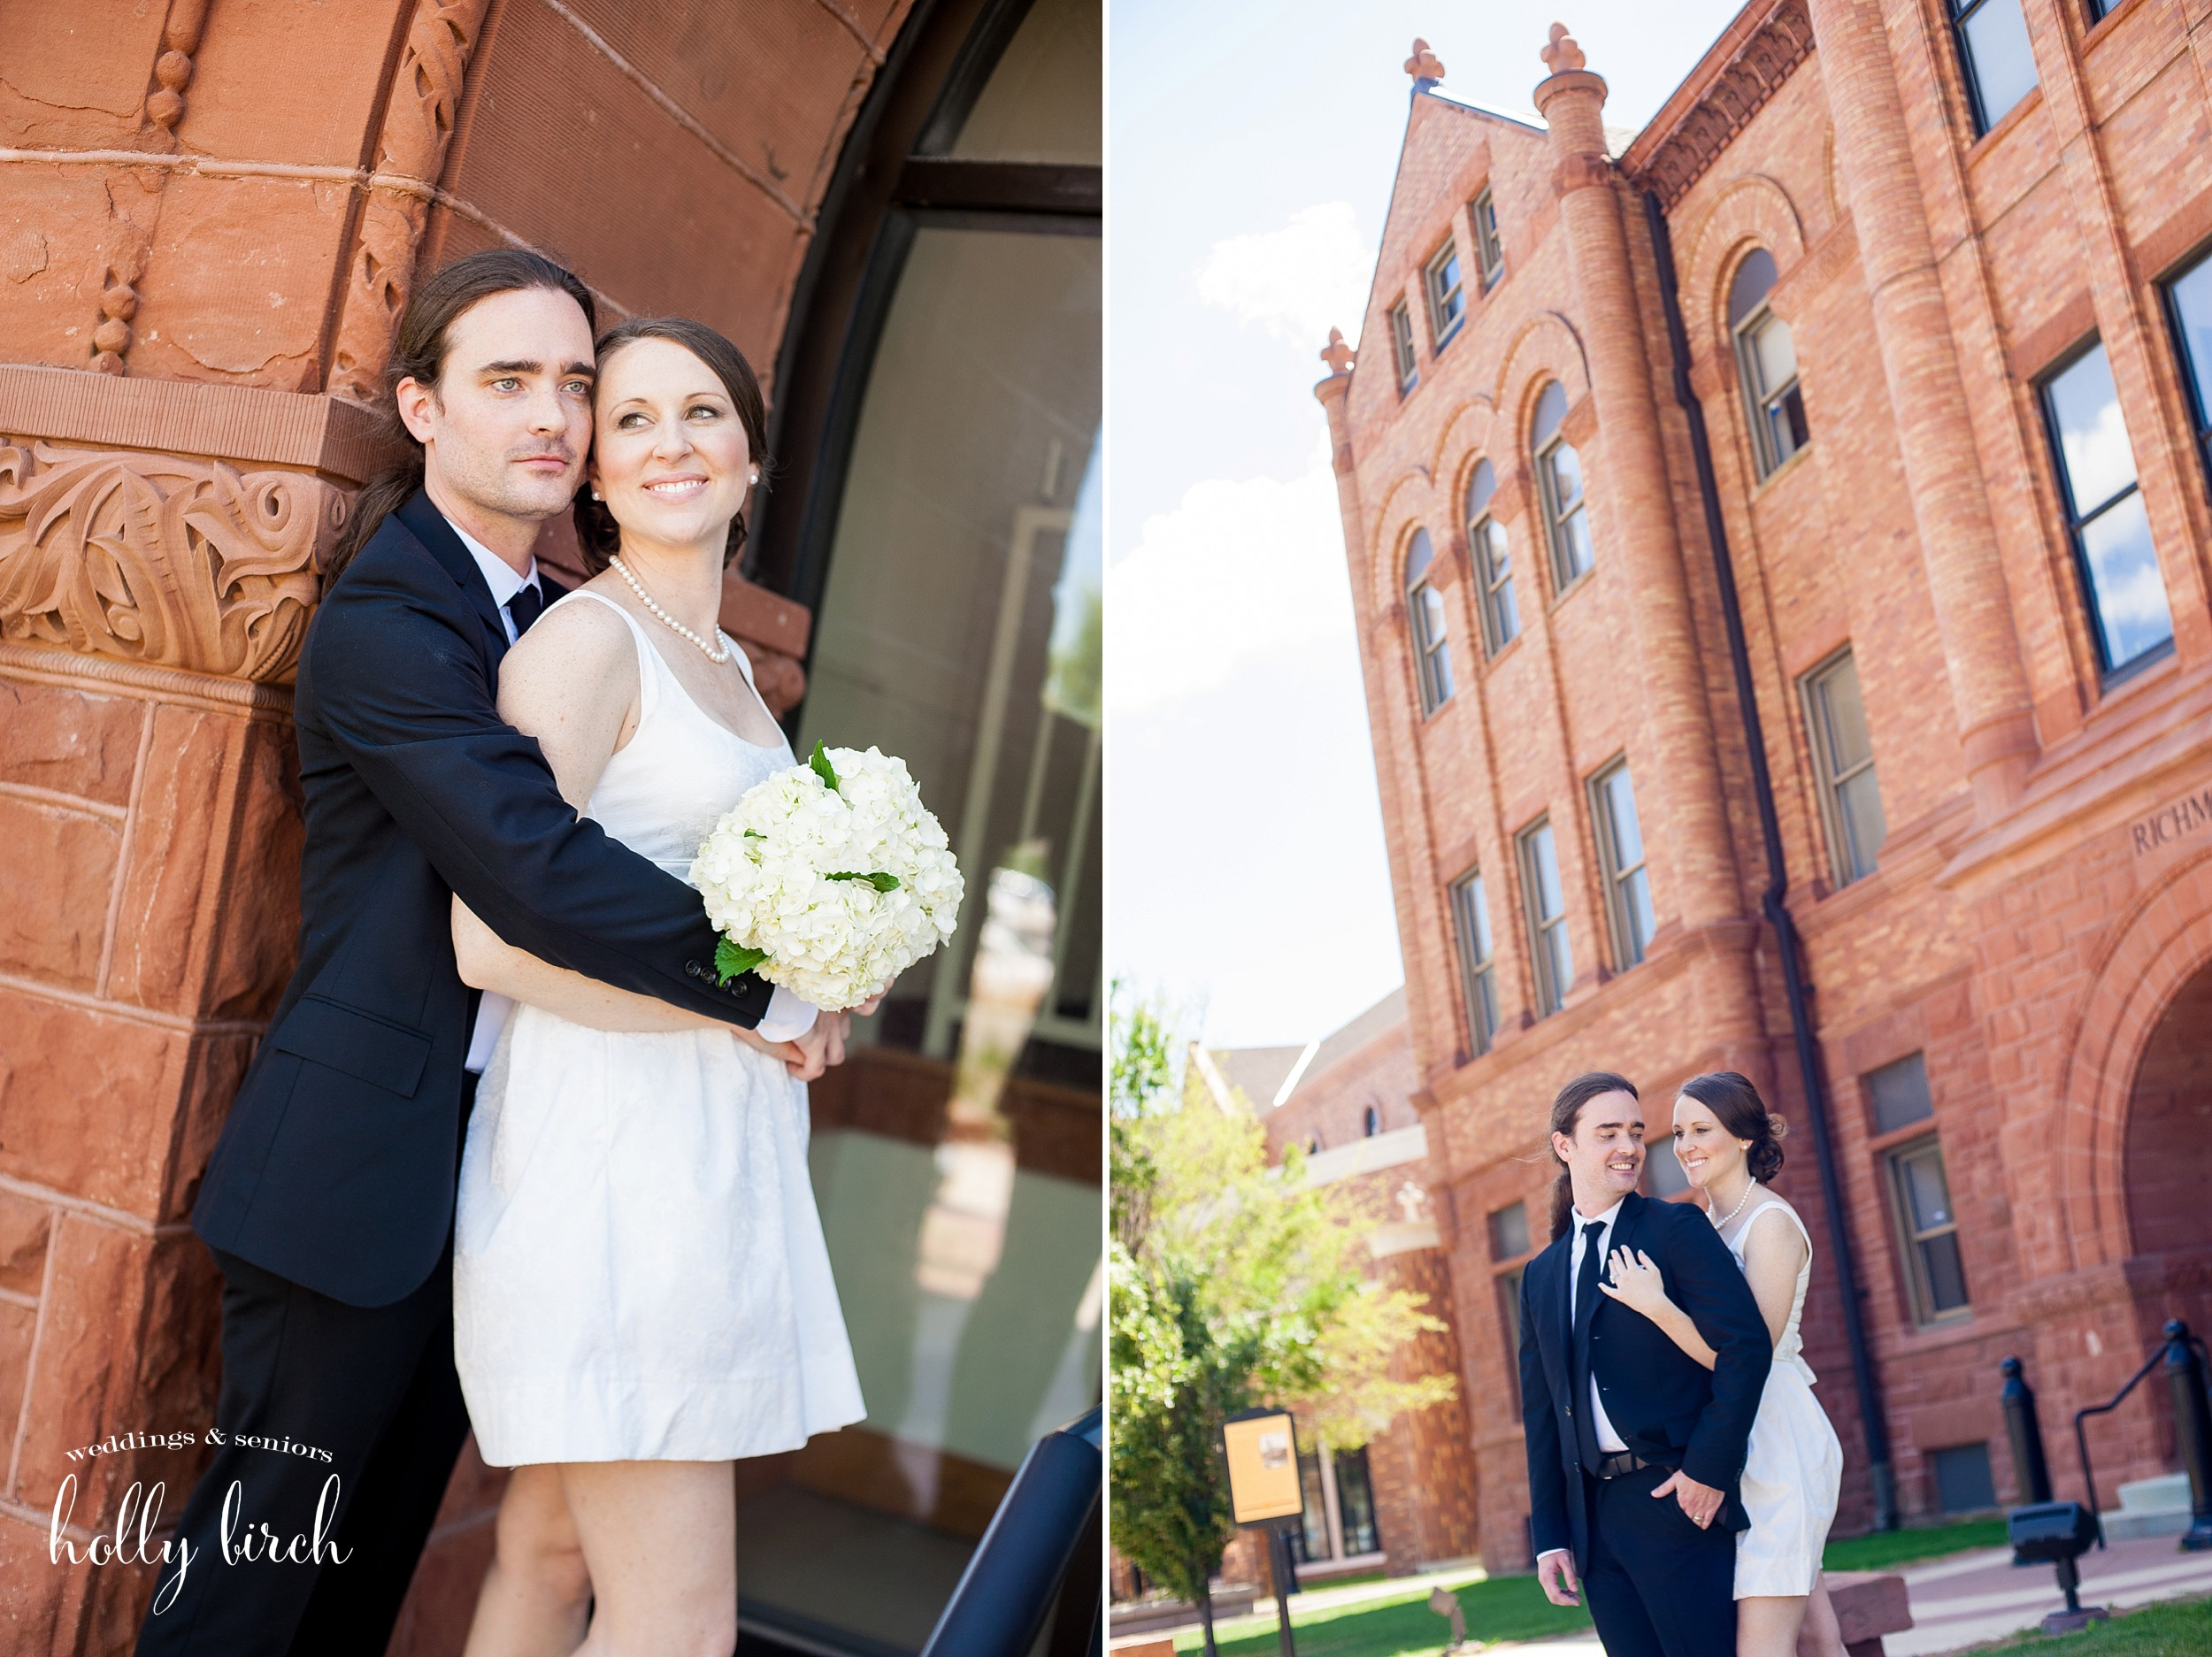 Holly Birch Photography courthouse photographer